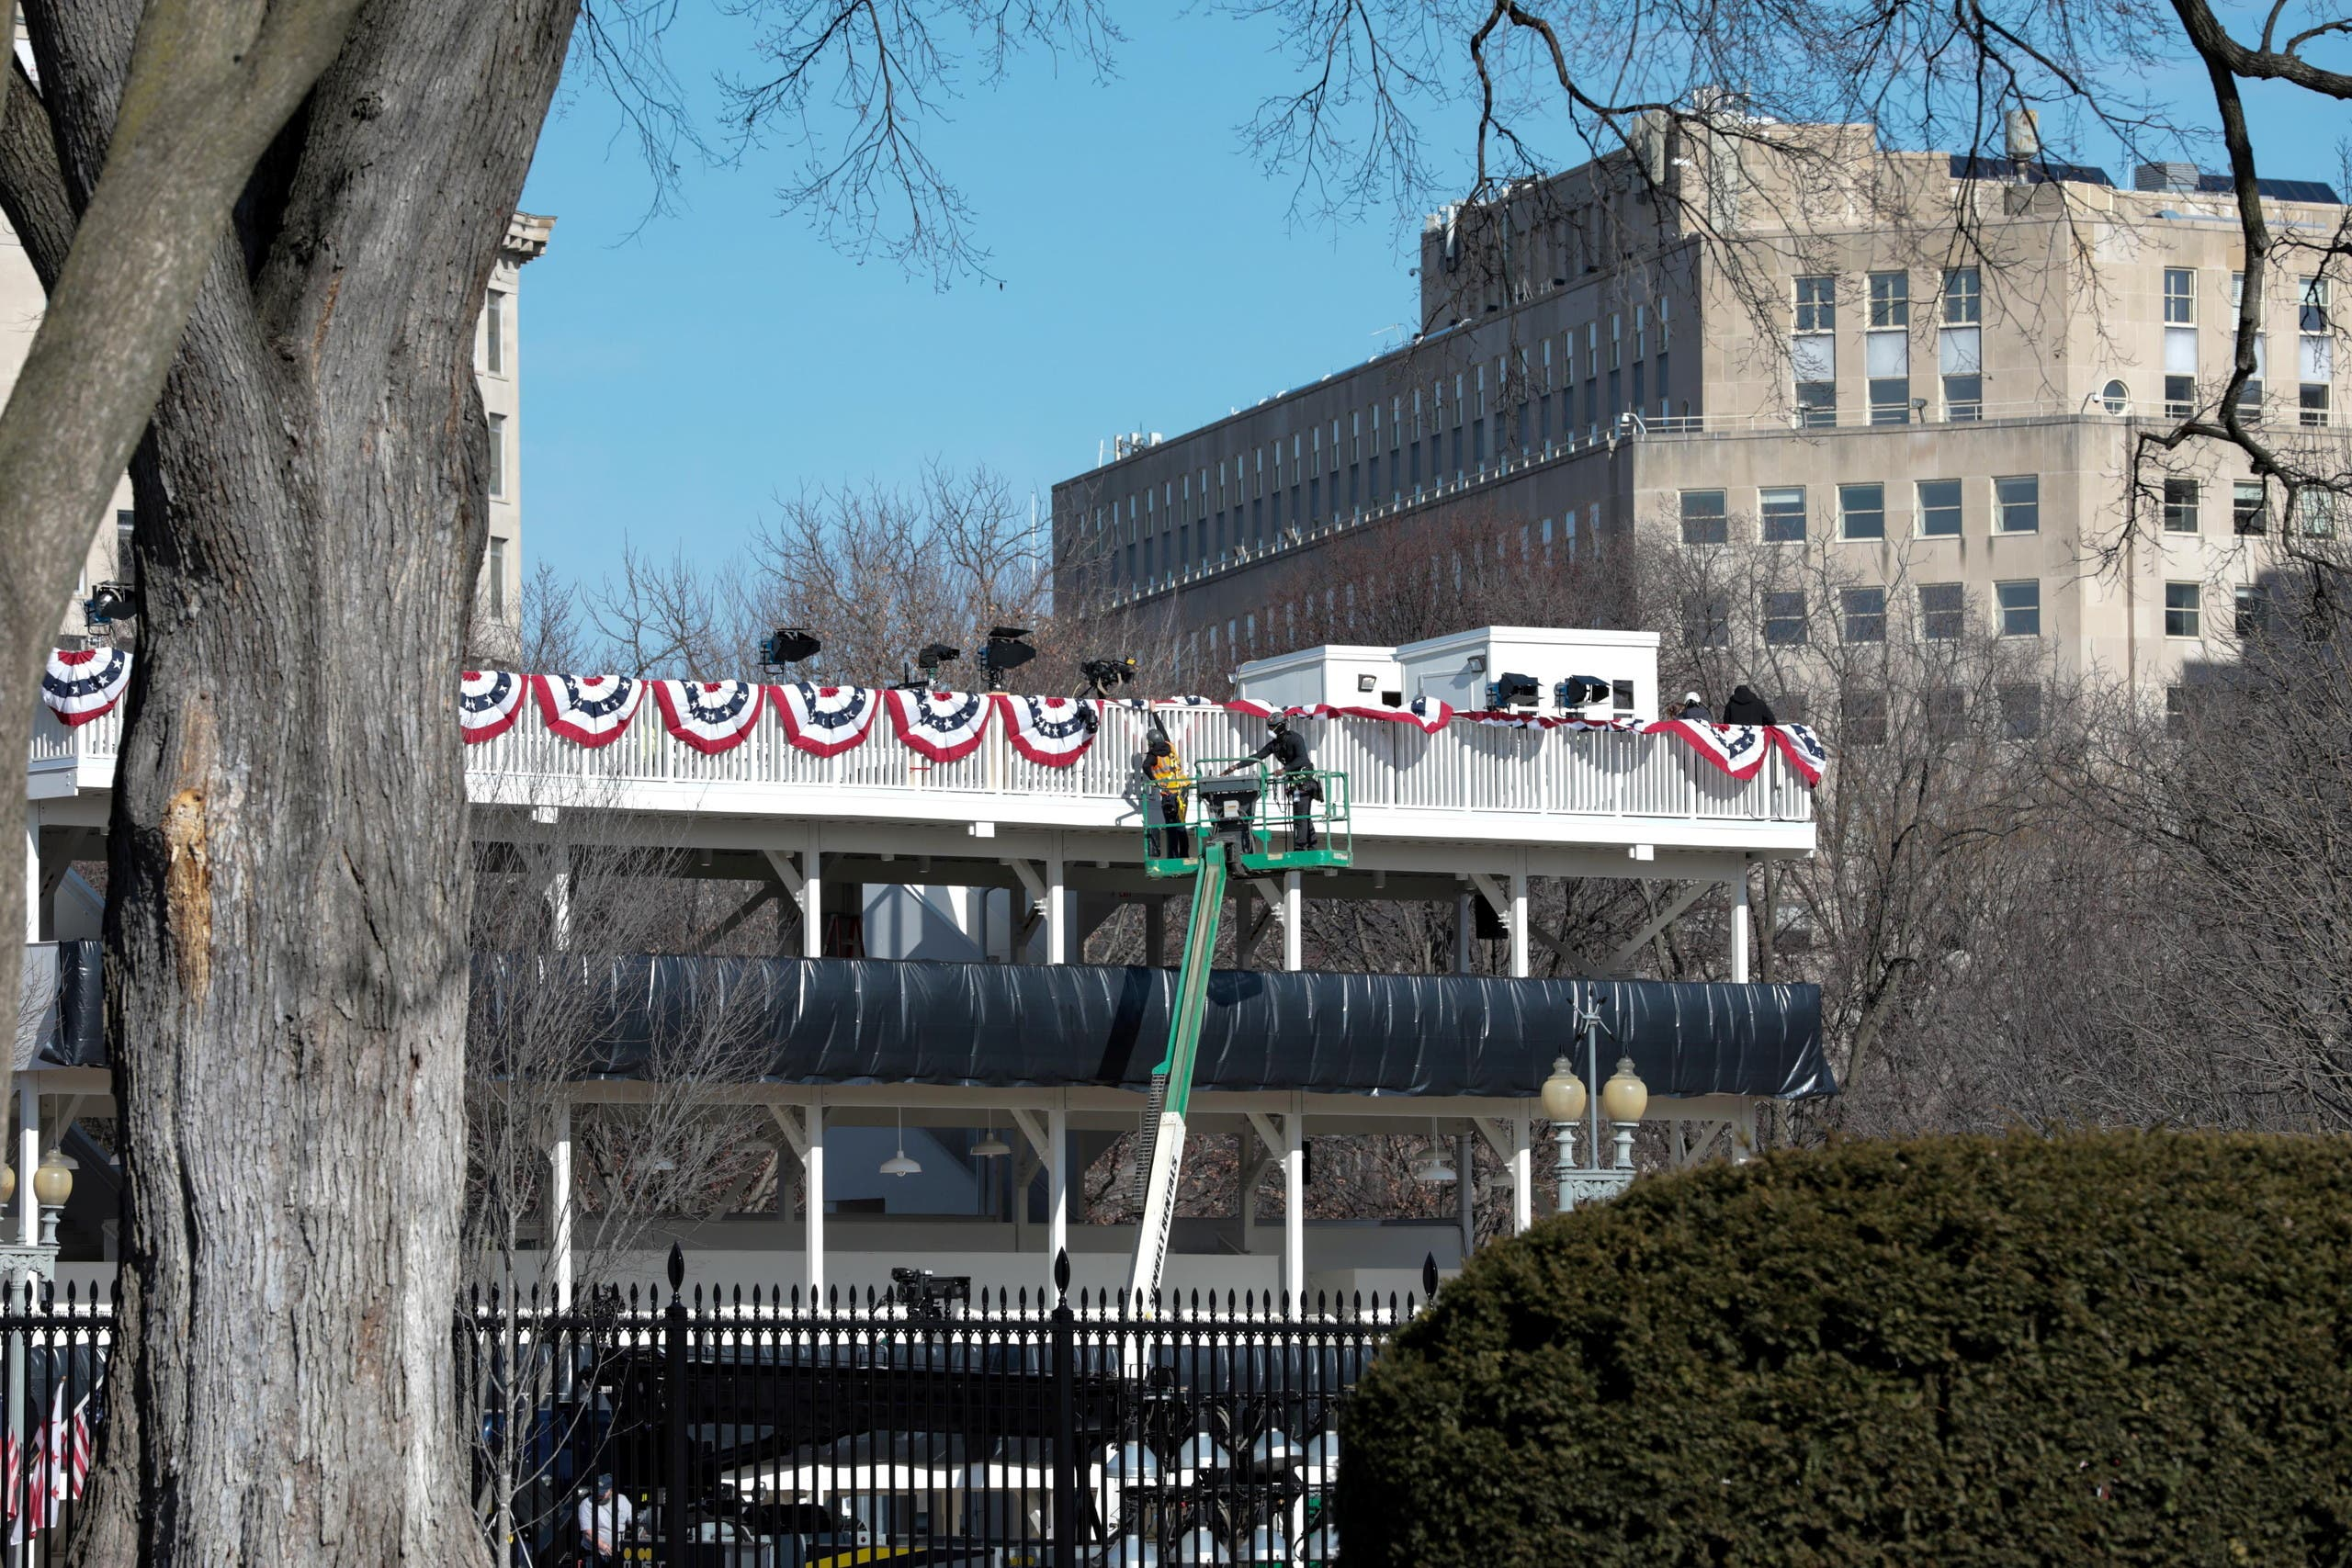 Workers make adjustments to the inaugural parade viewing stand across the front of The White House, ahead of U.S. President-elect Joe Biden's inauguration, in Washington. (reuters)